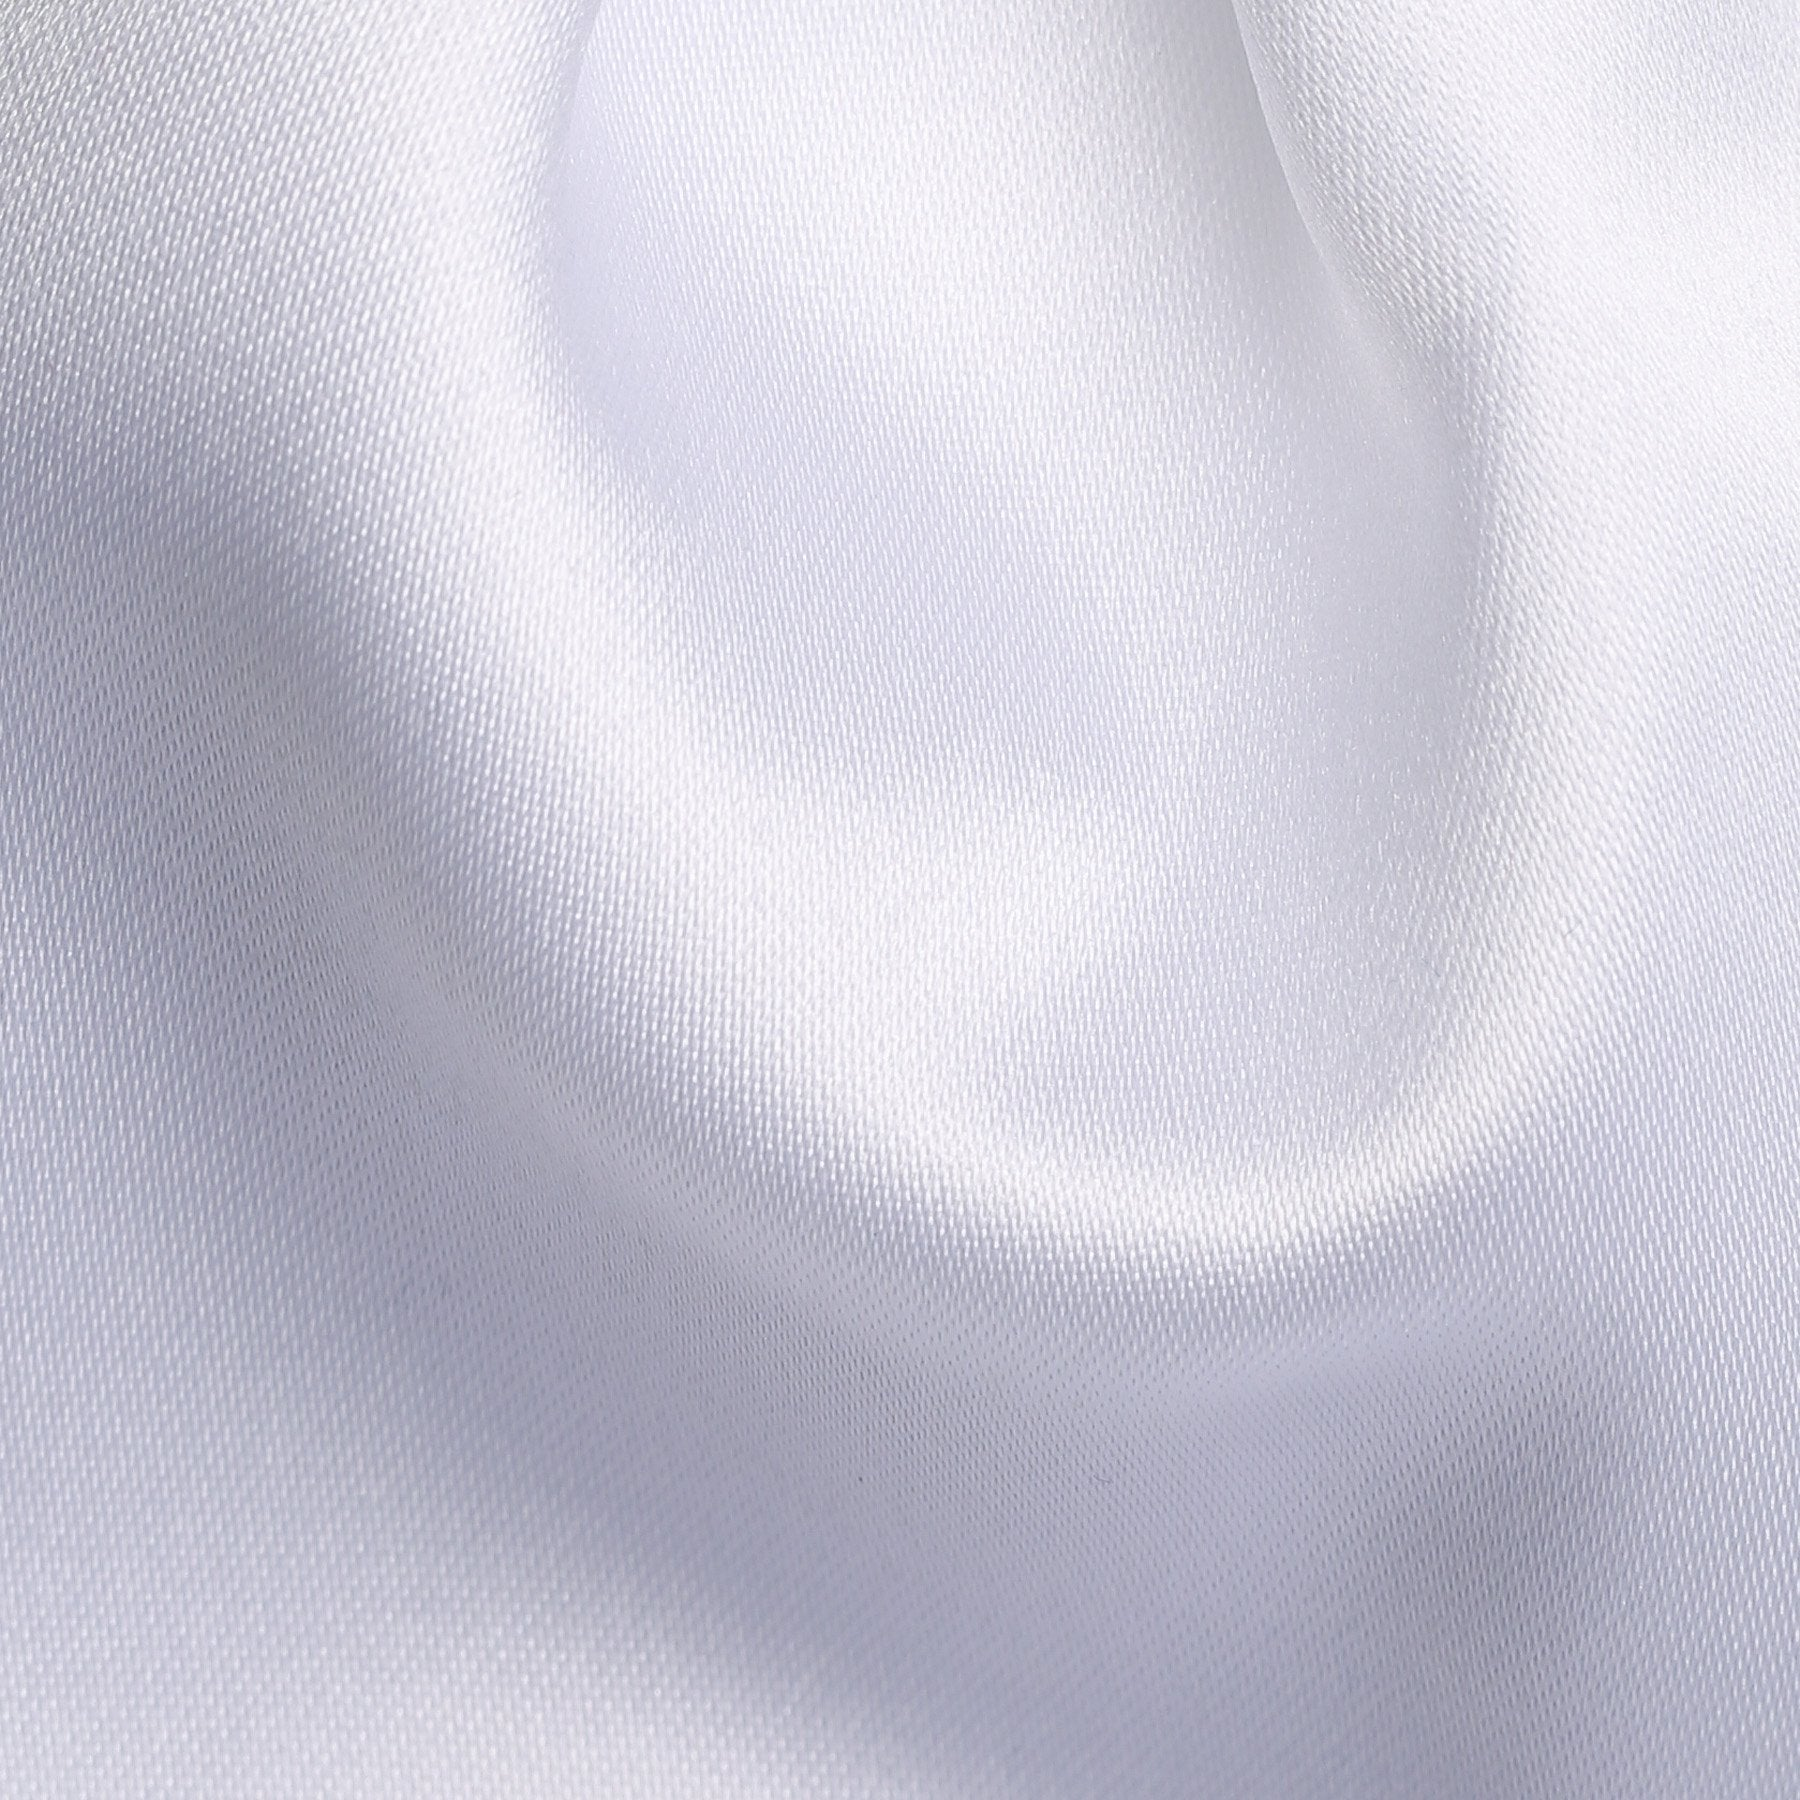 Folkespeare Boys White Satin Scrunchie Cravat Fabric